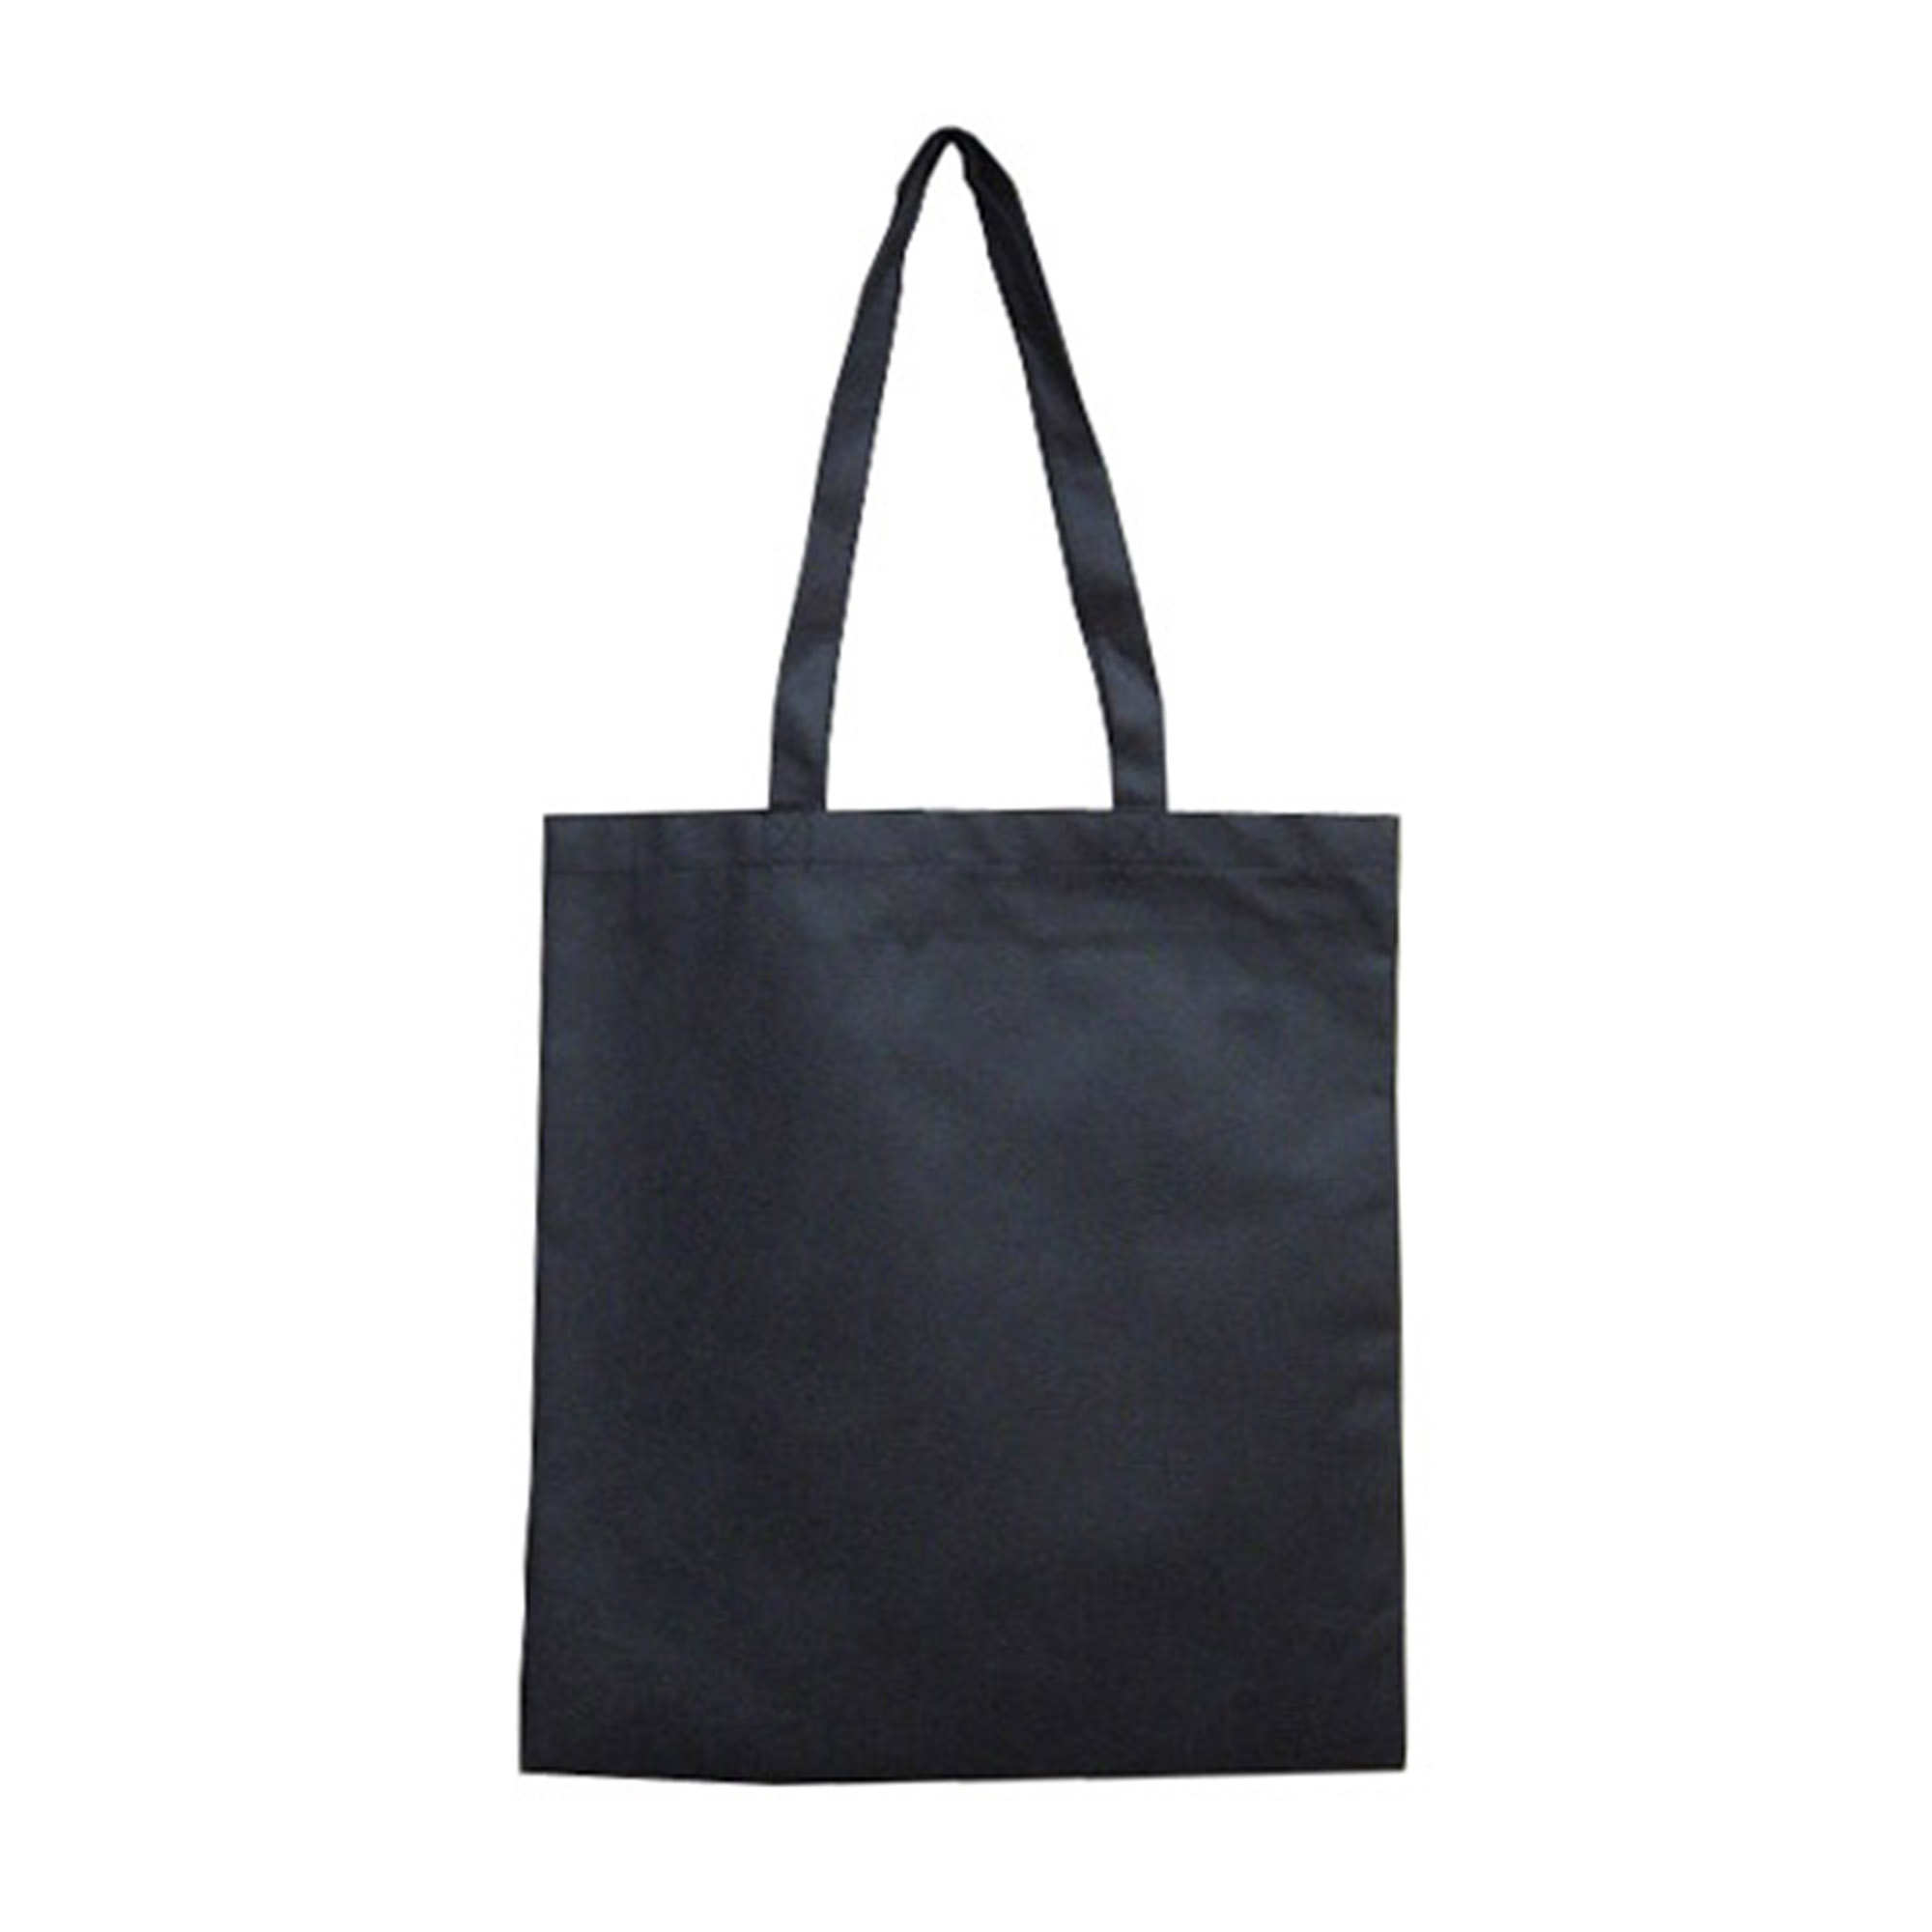 NON WOVEN BAG WITHOUT GUSSET - 1 Colour Print, From $0.93